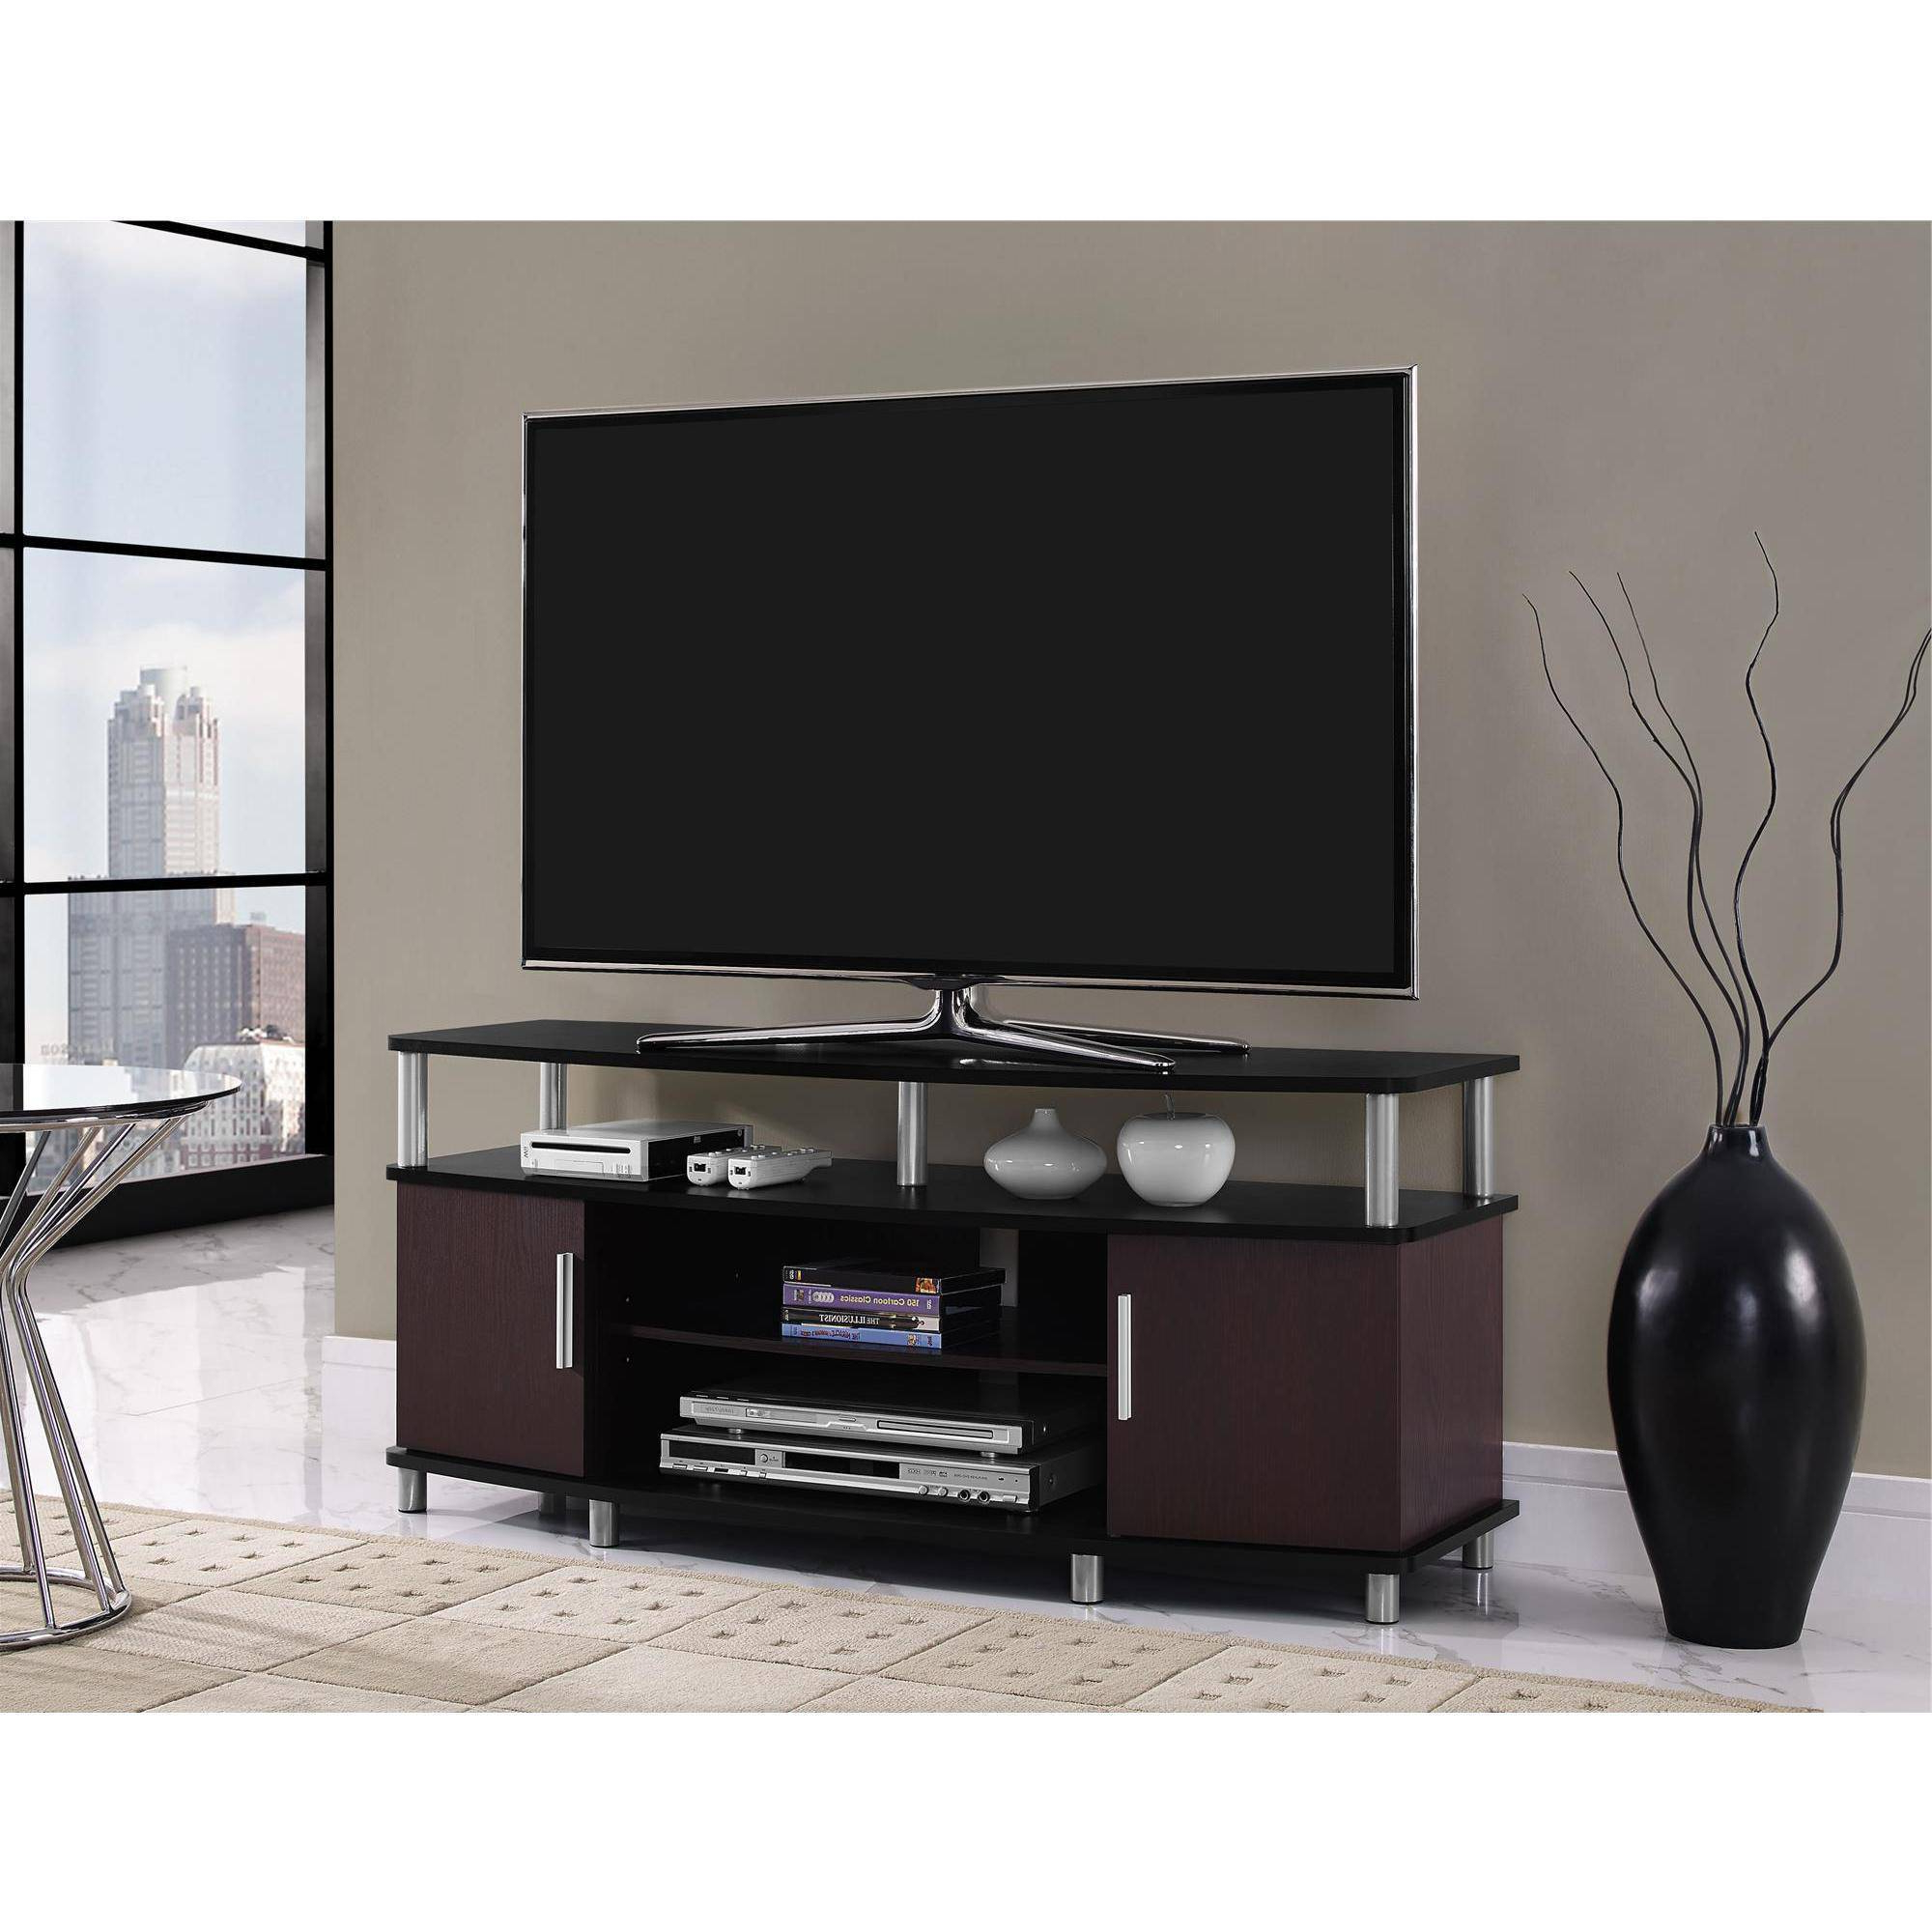 "Entertainment Center Tv Stands Throughout Well Liked Carson Tv Stand, For Tvs Up To 50"", Multiple Finishes – Walmart (Gallery 2 of 20)"